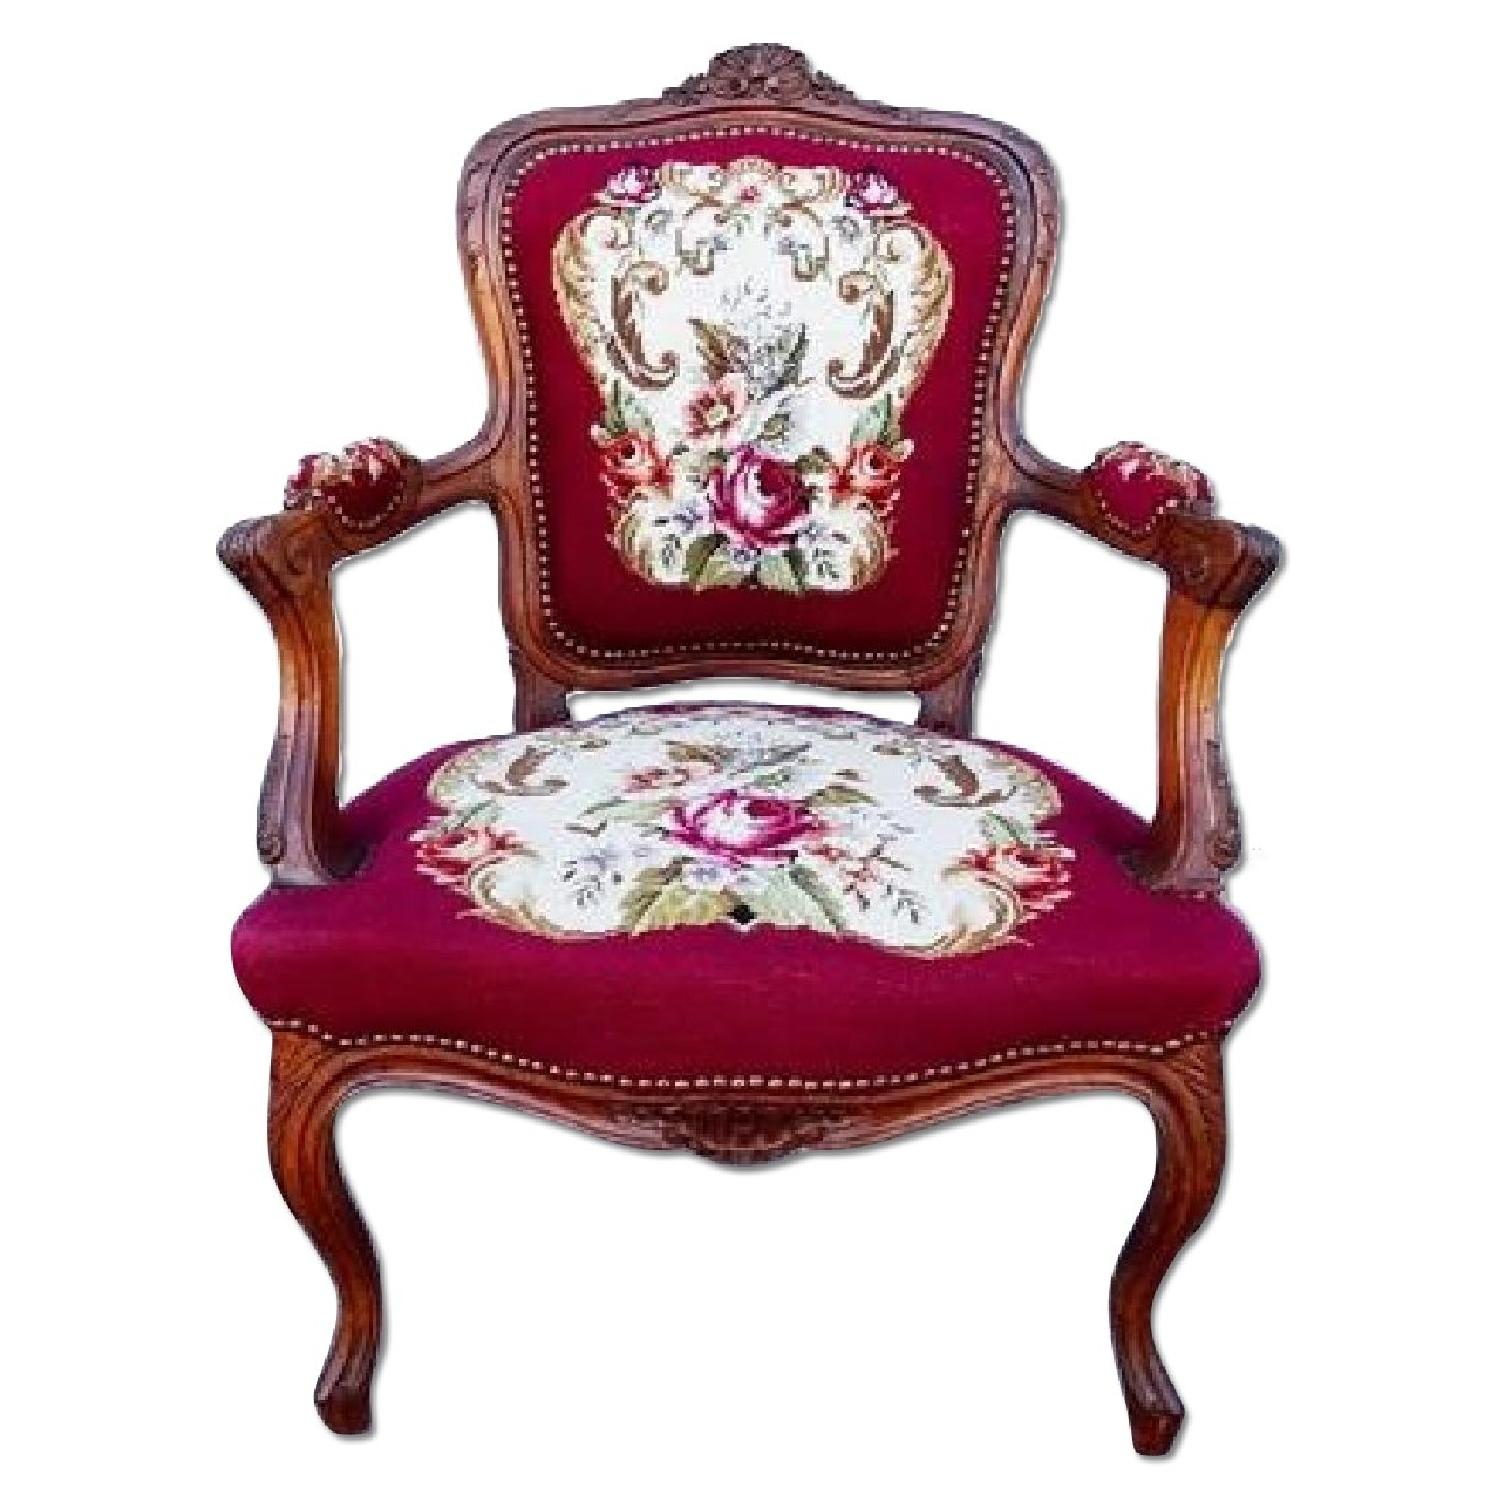 Antique Hand-Carved French Country Louis XV Rococo Chair